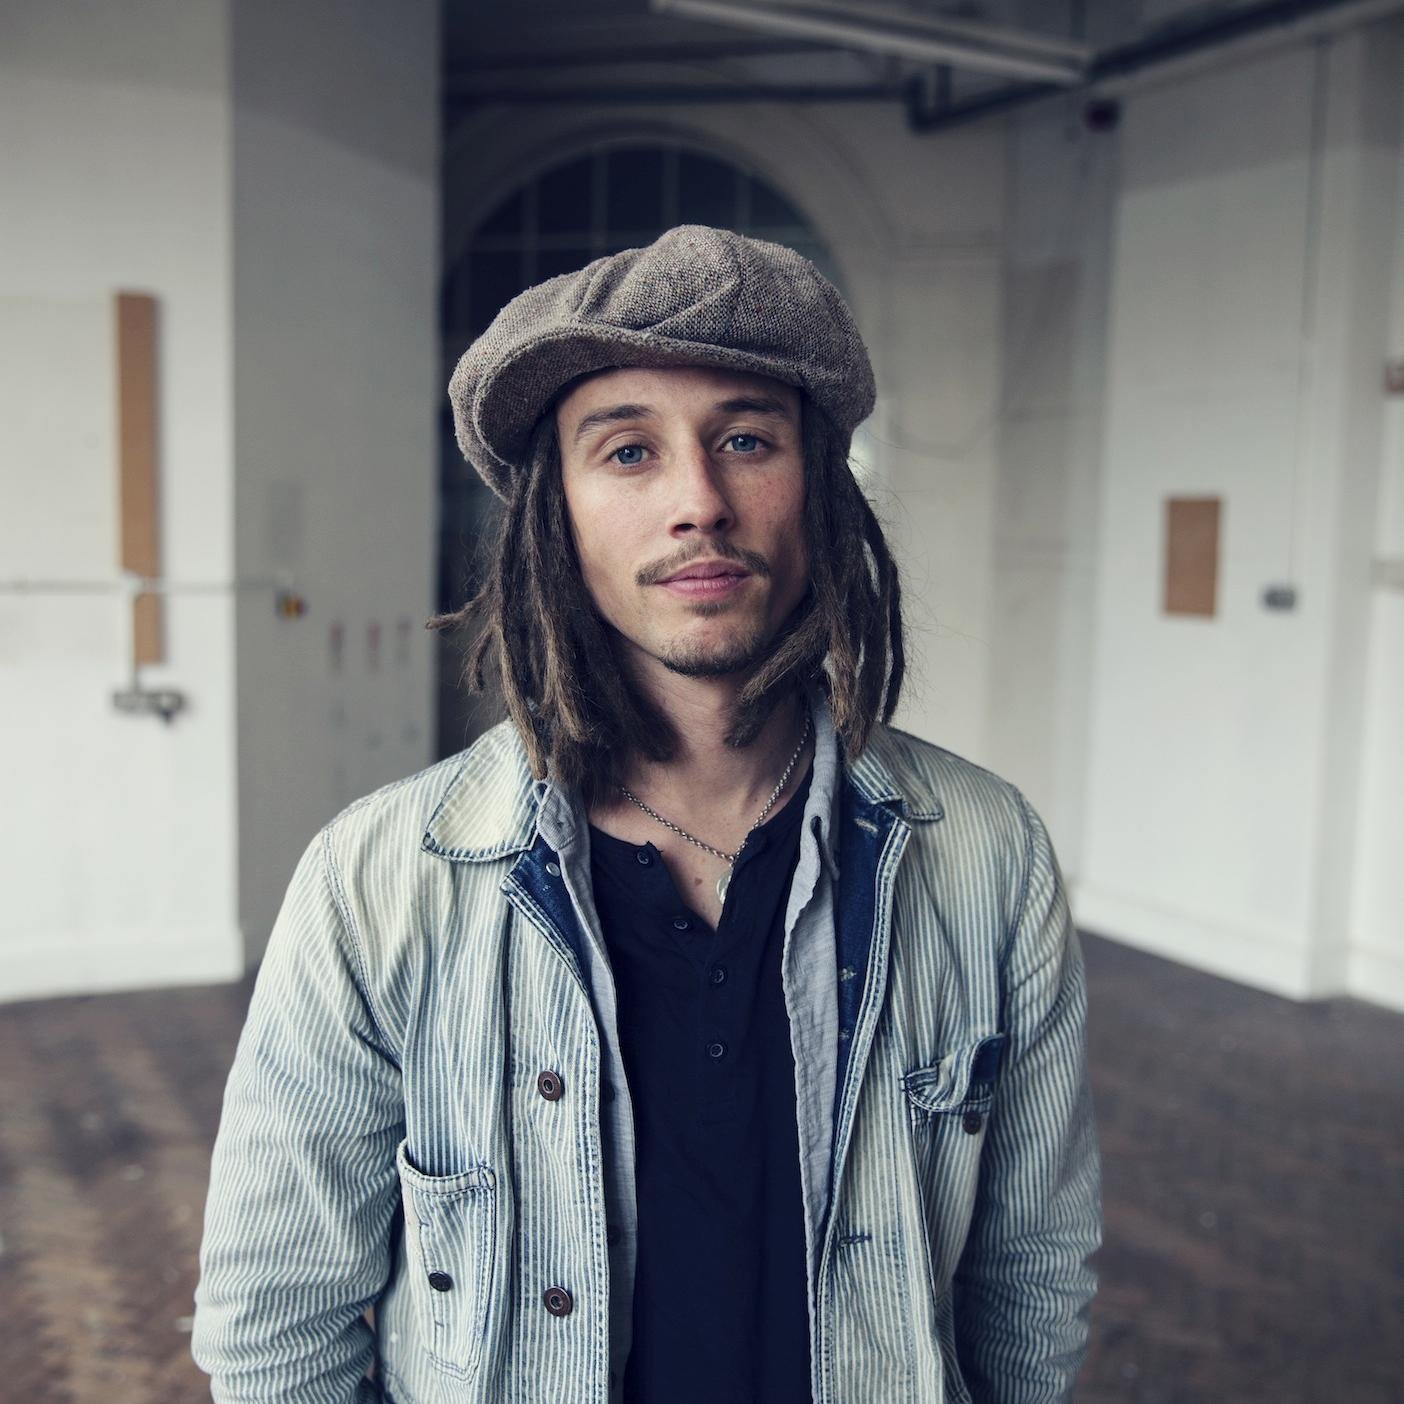 Songs to love: JP Cooper